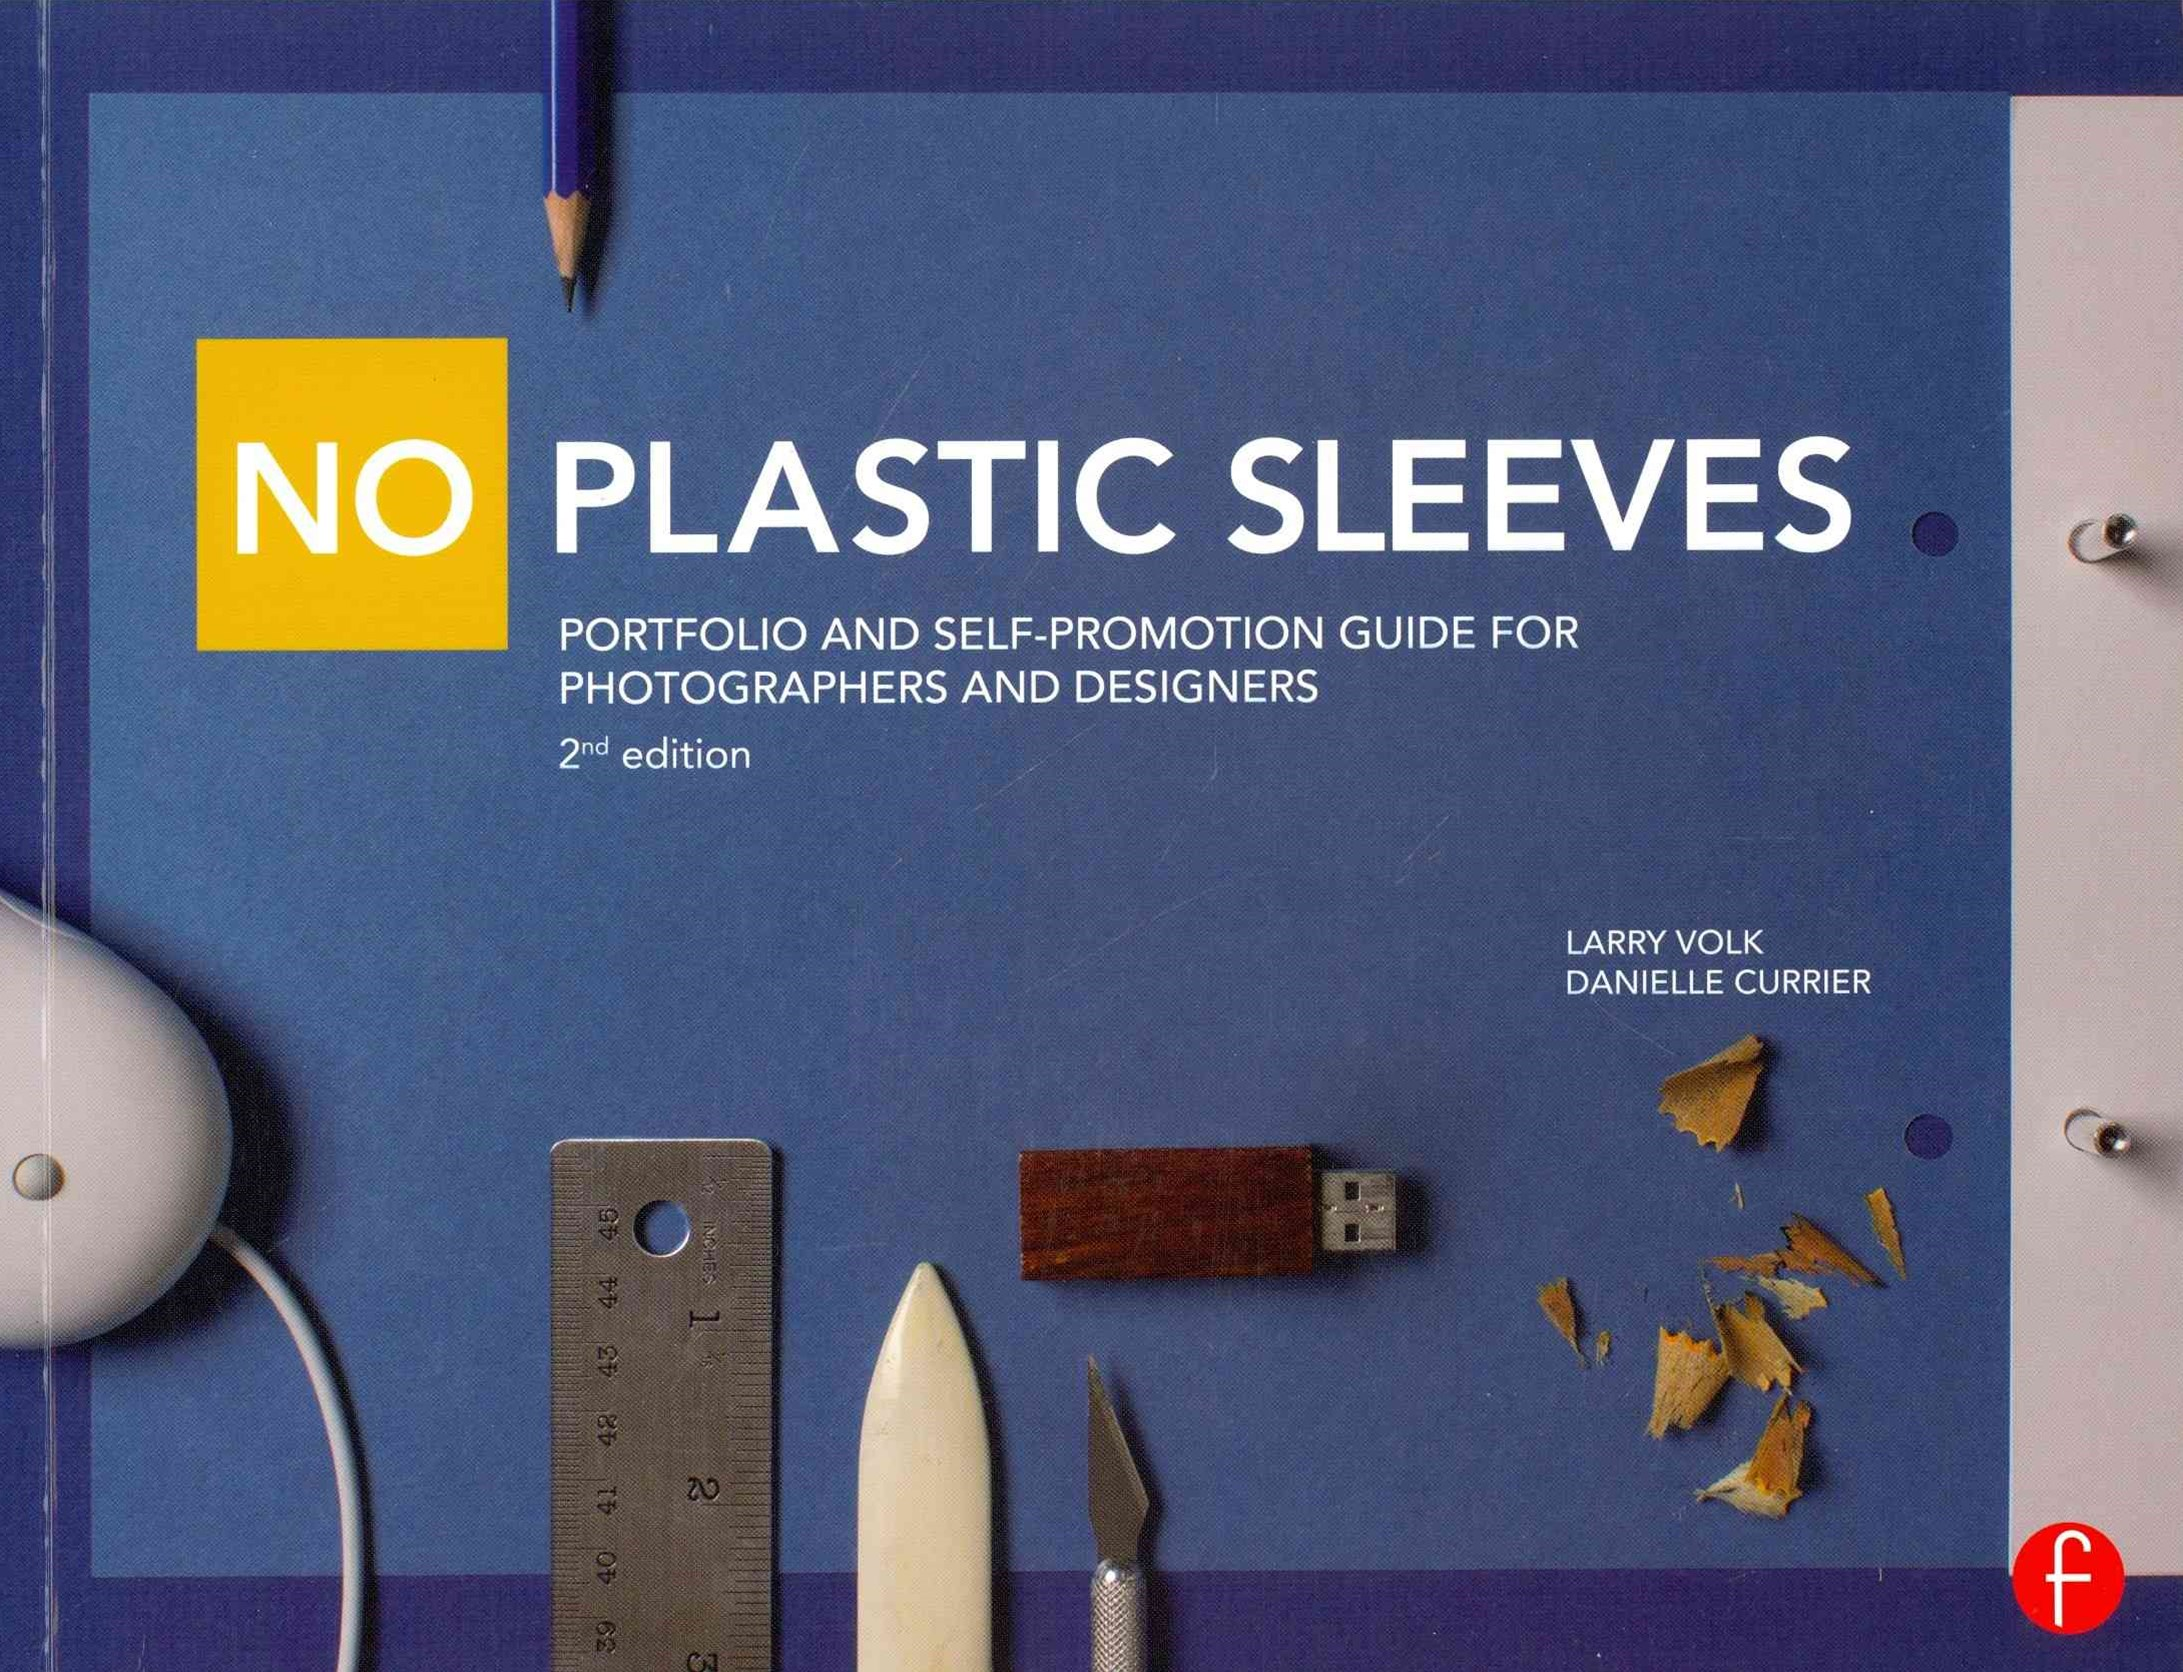 No Plastic Sleeves: Portfolio & Self-Promotion Guide for Photographers & Designers